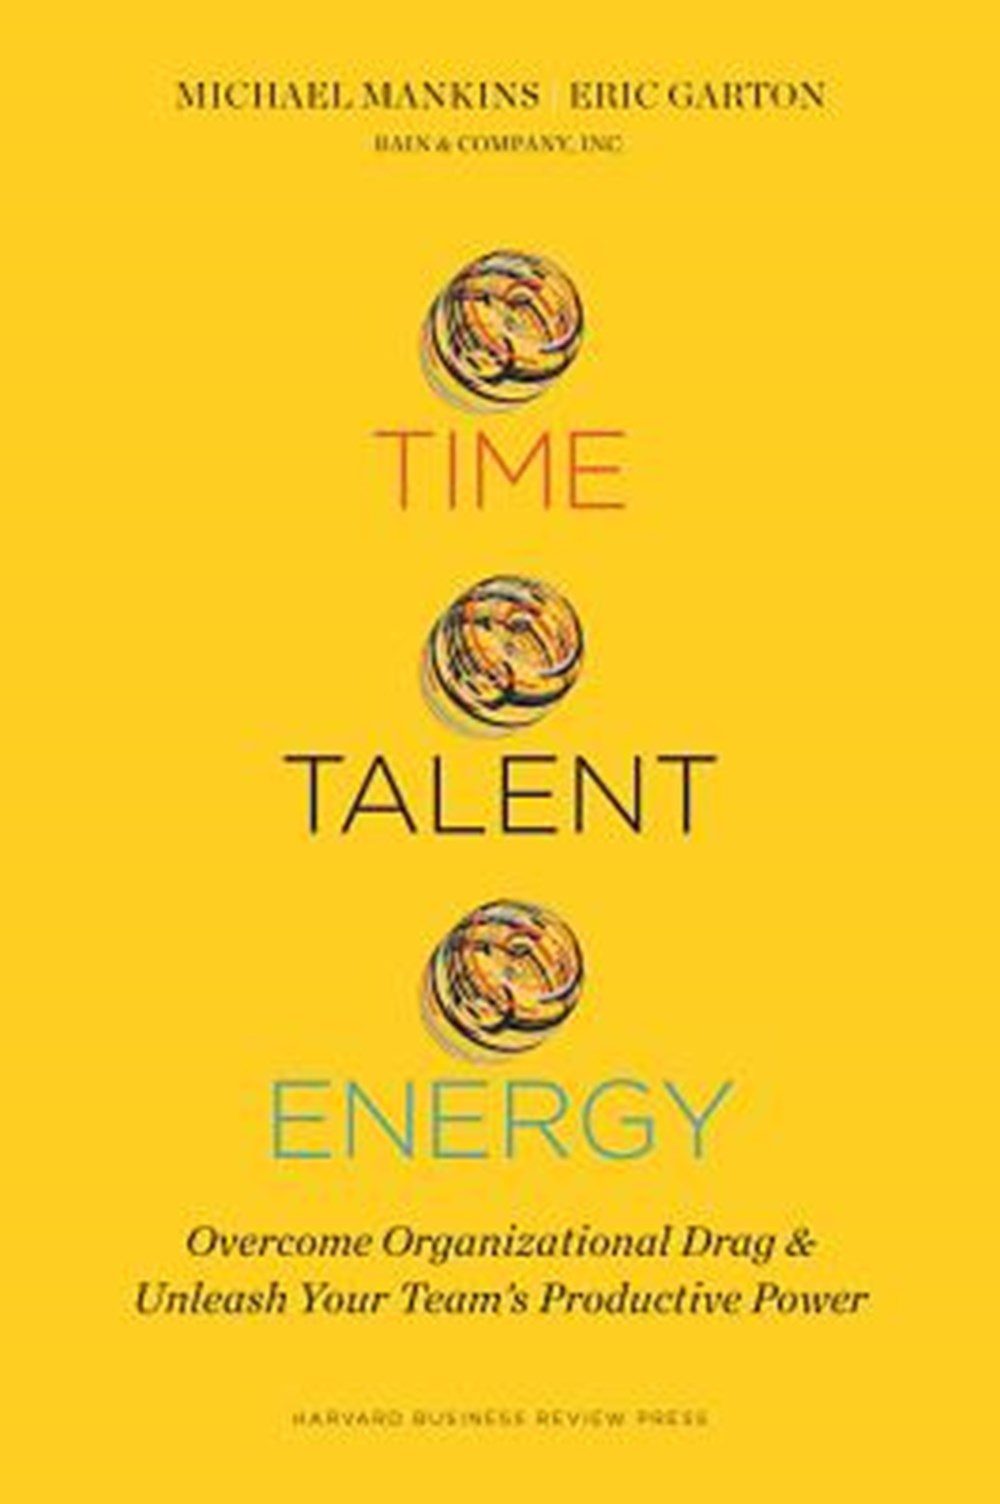 Time, Talent, Energy Overcome Organizational Drag and Unleash Your Team's Productive Power